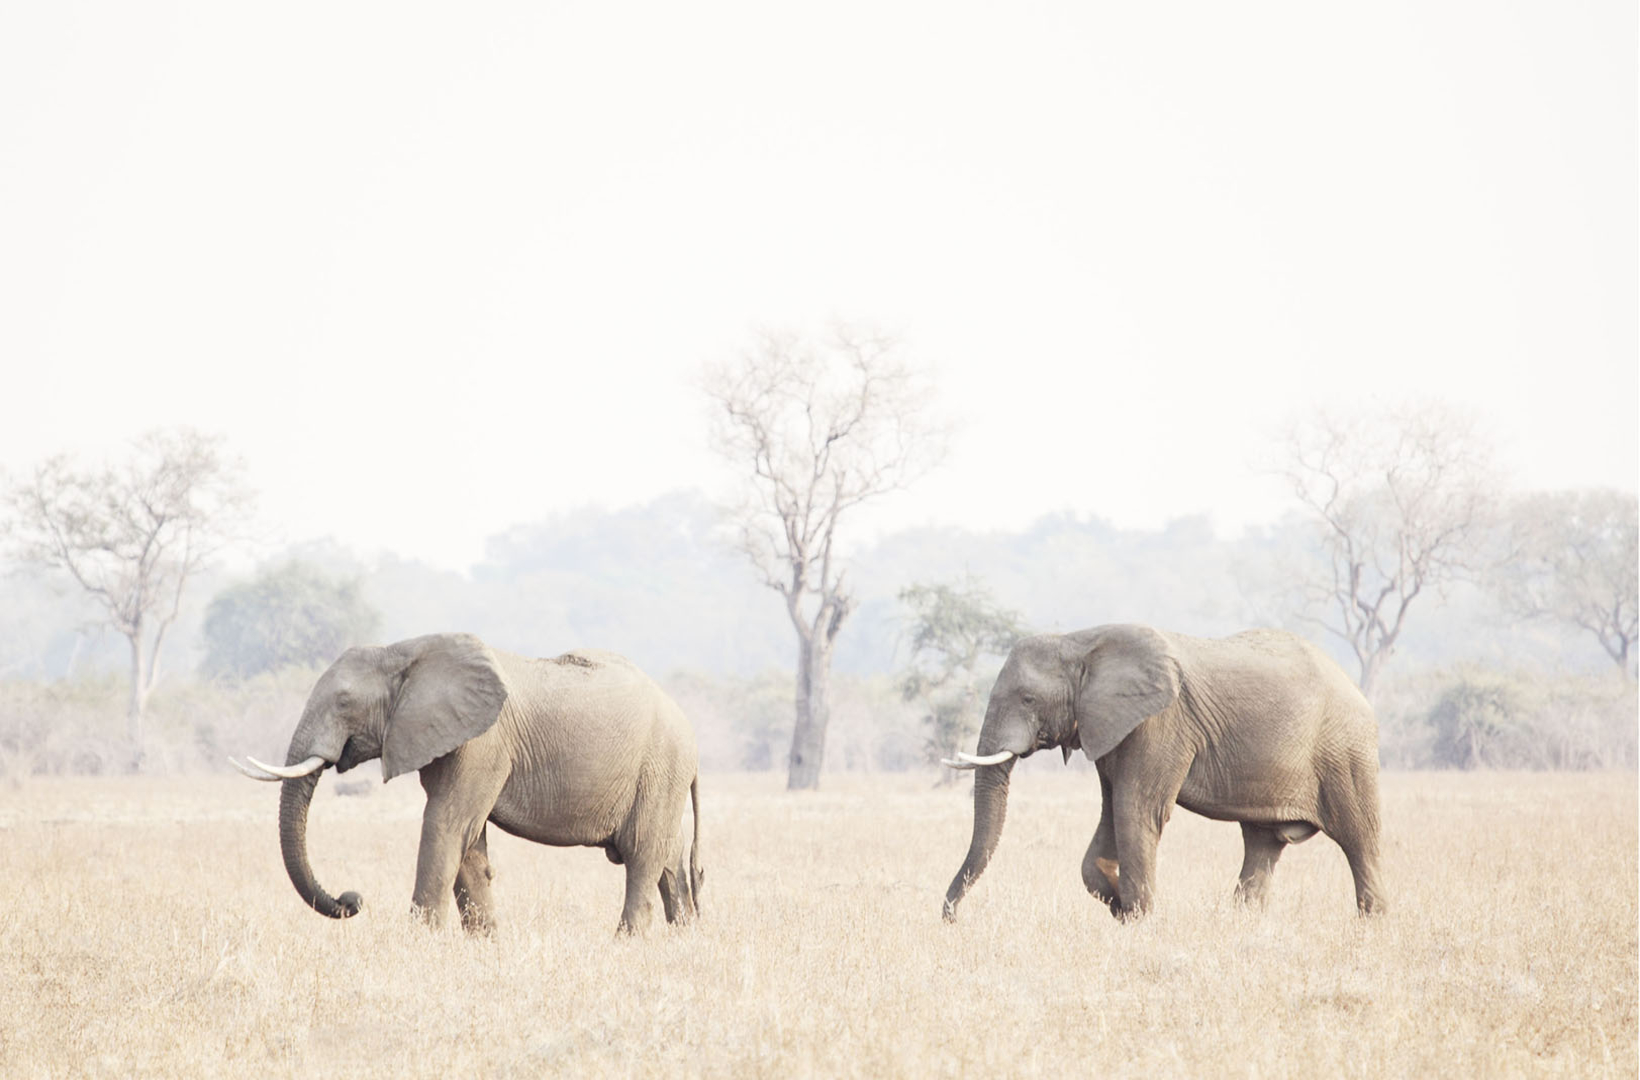 Two African elephants move slowly across the savanna at dusk in South Luangwa National Park in Zambia